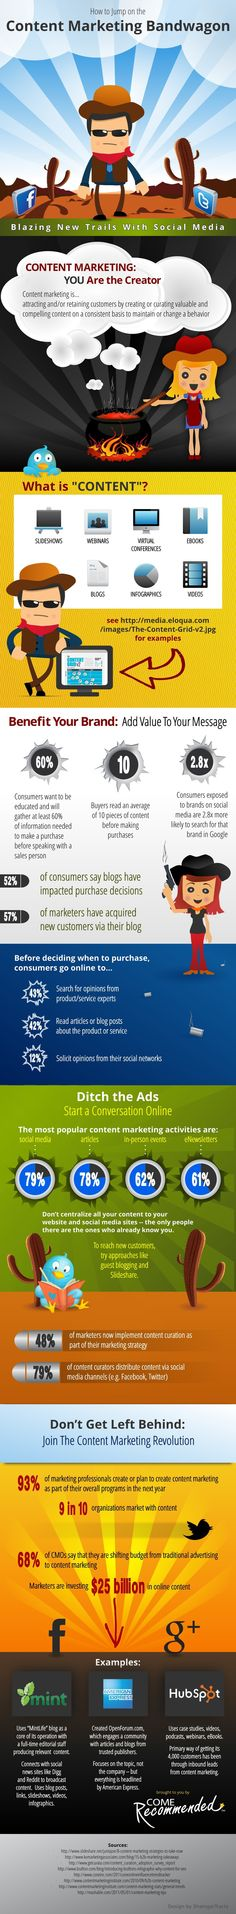 #ContentMarketing - You Are the Creator [#Infographic]